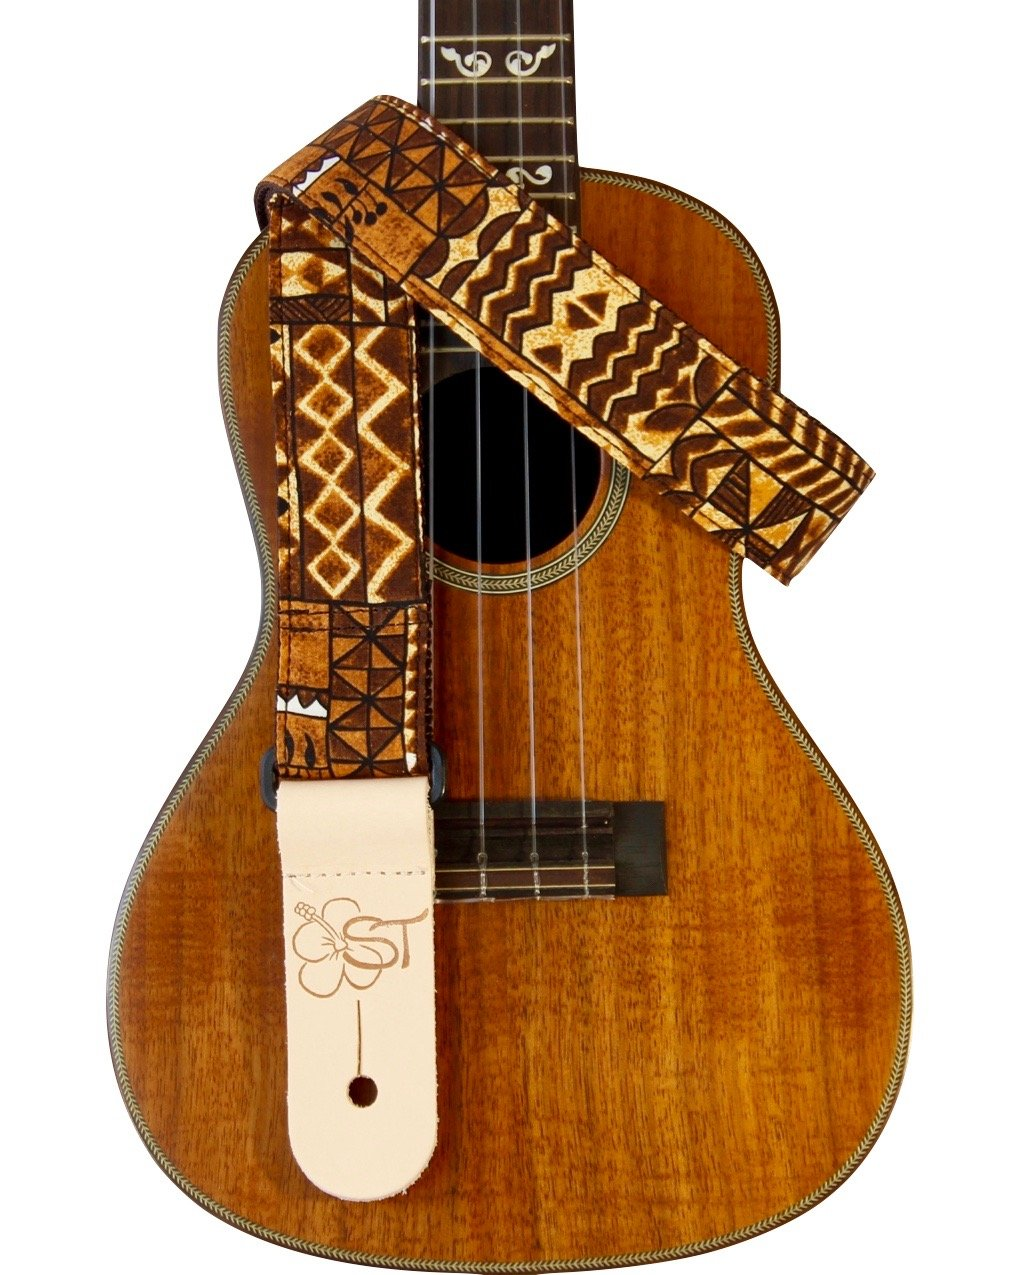 Sherrin's Threads 1.5 Hawaiian Print Ukulele Strap - Brown Tapa